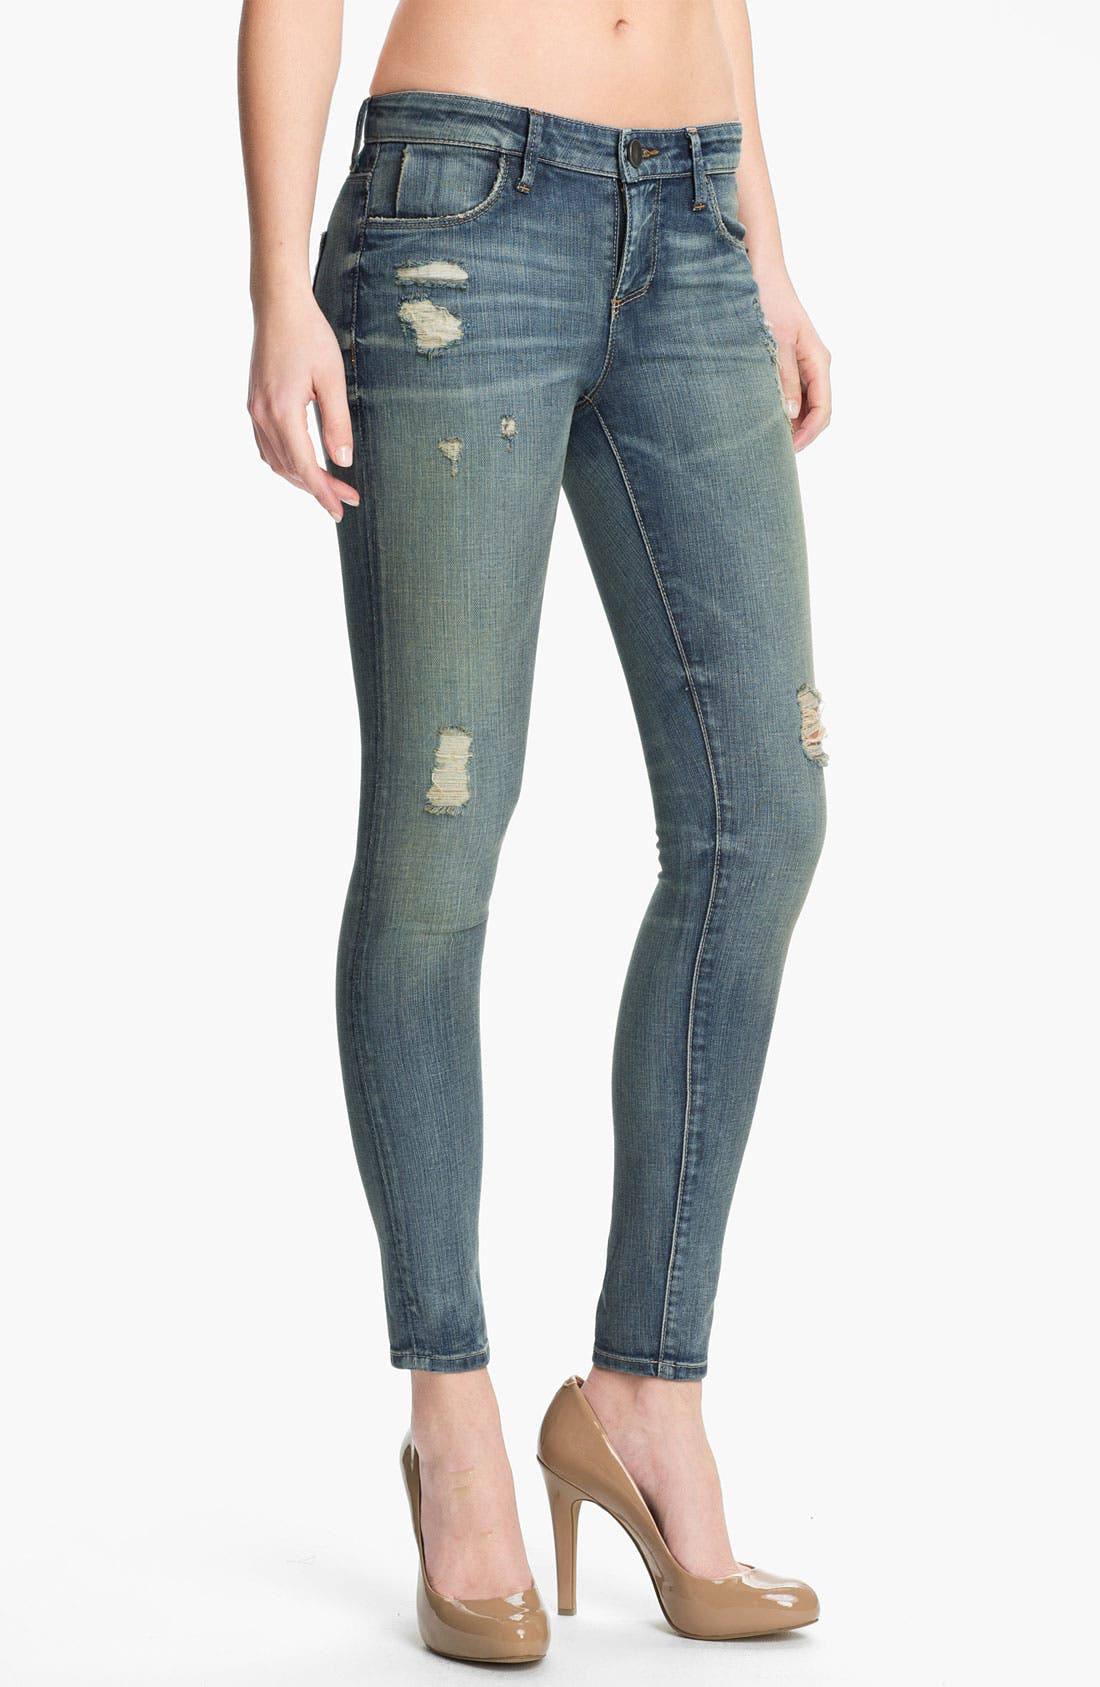 Alternate Image 1 Selected - KUT from the Kloth 'Brigitte' Skinny Ankle Jeans (Escape)